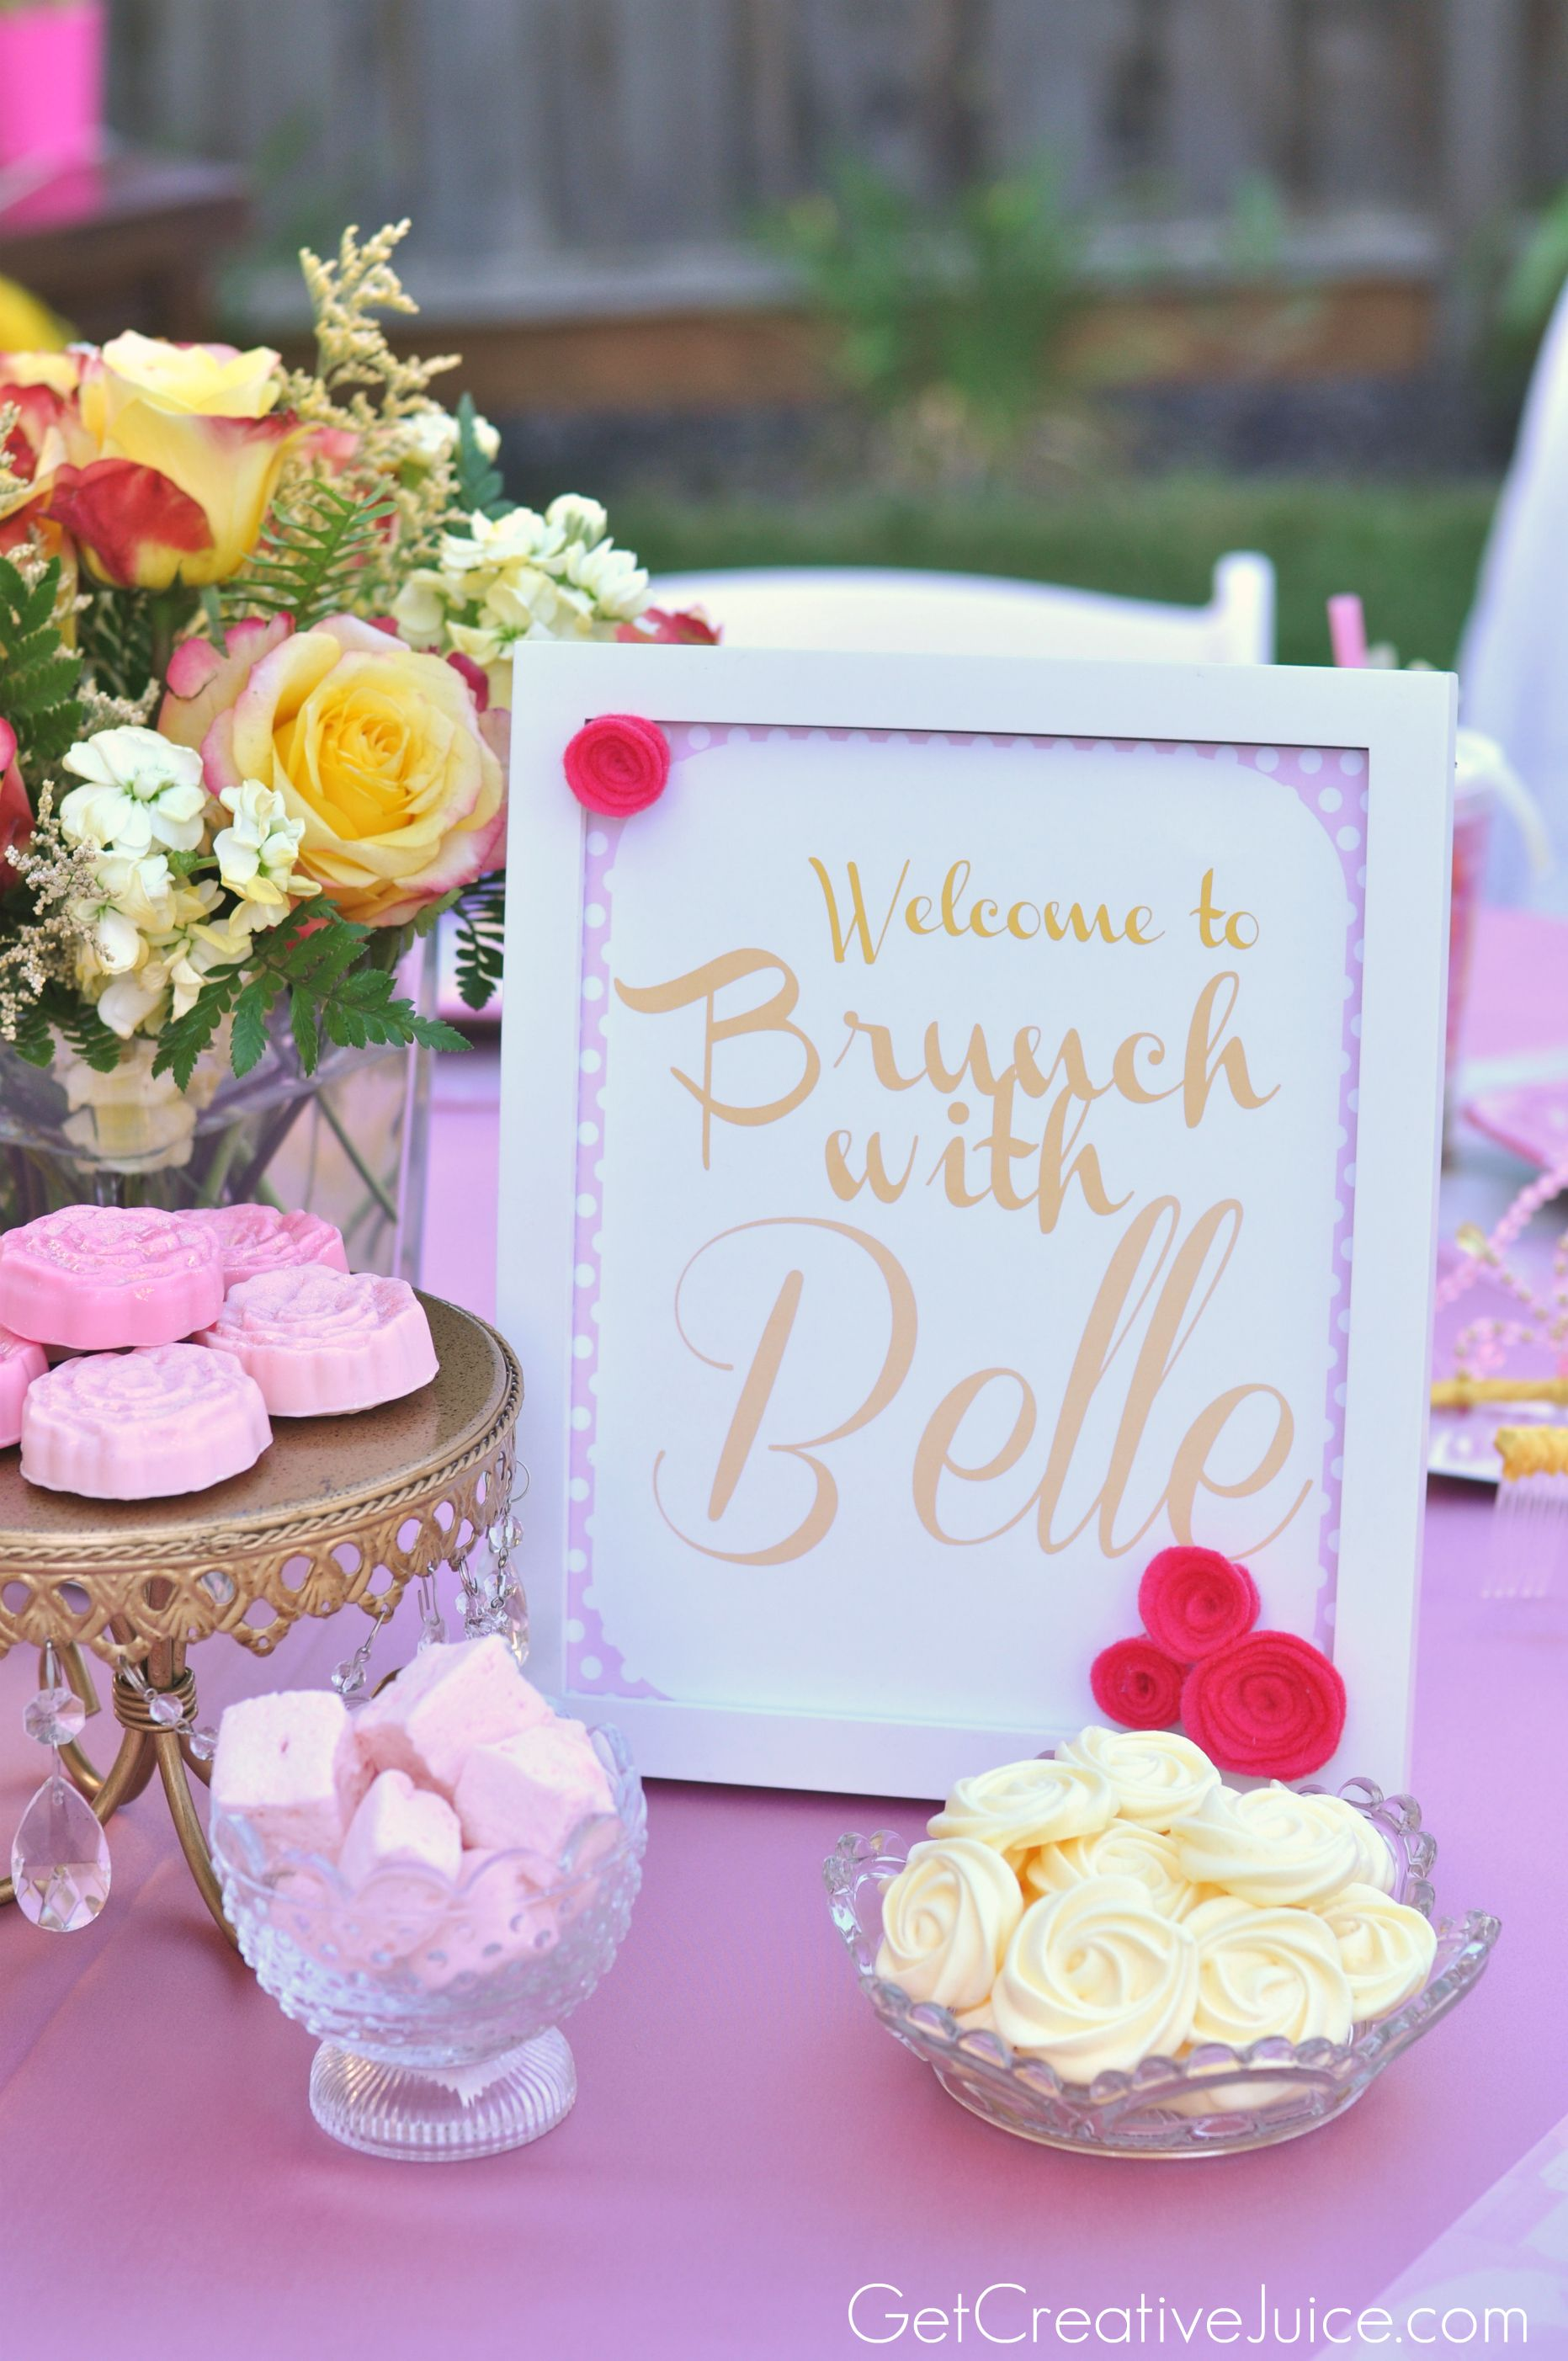 Bunch With Belle Princess Party Ideas Jpg 1863